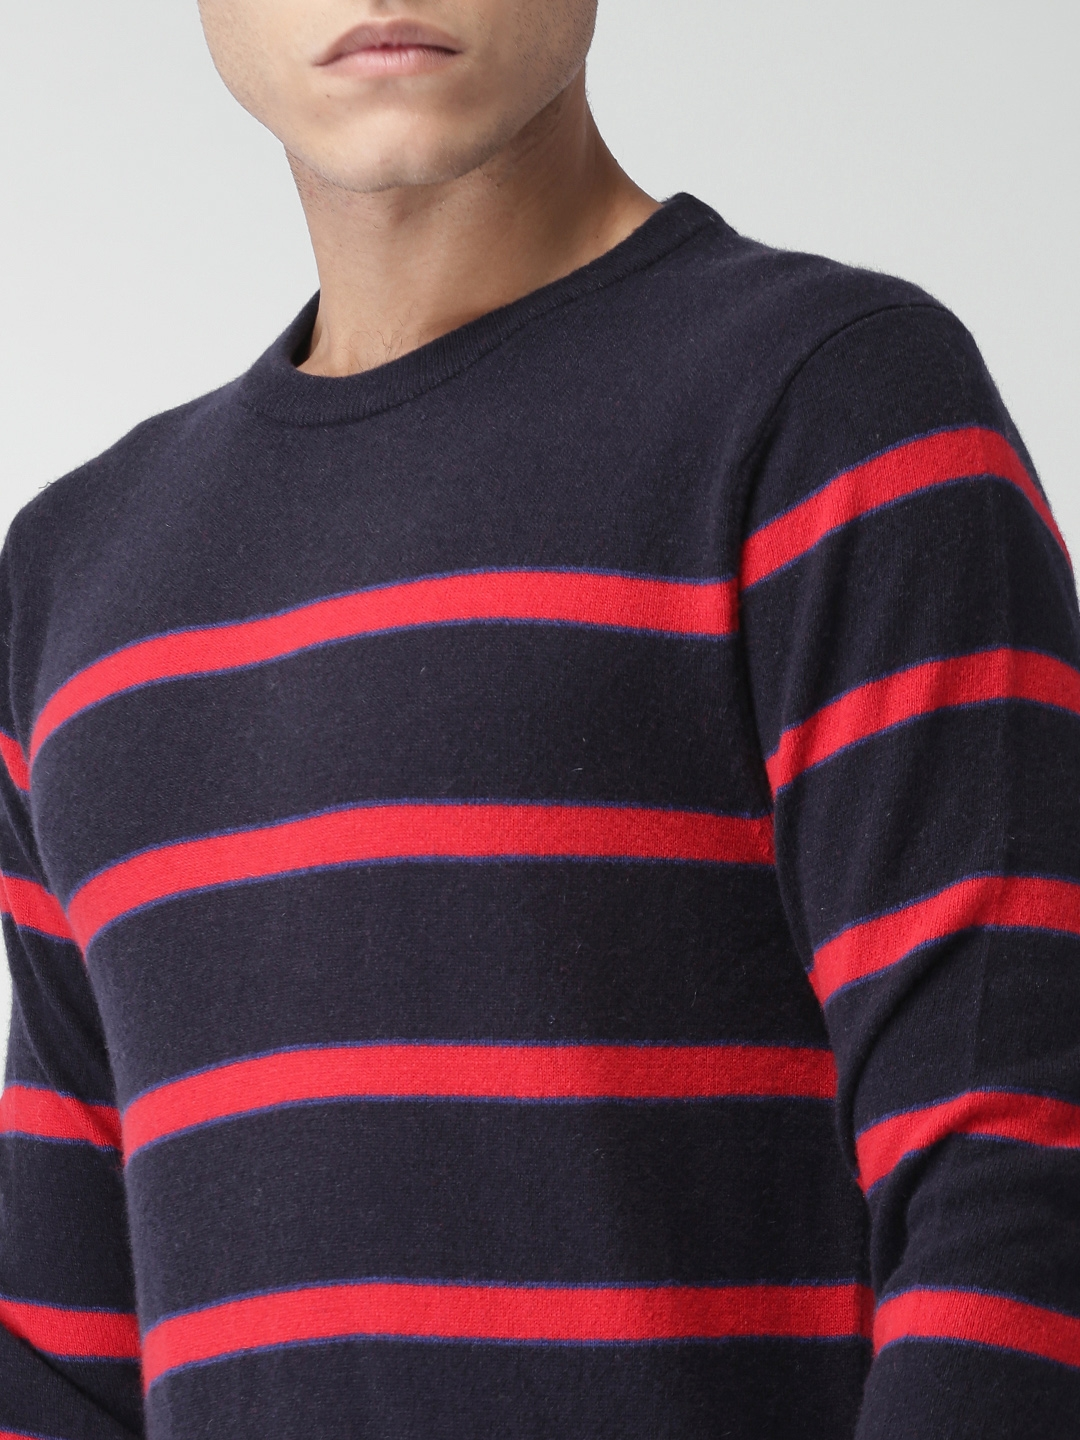 680f6147 Buy Tommy Hilfiger Men Navy Blue & Red Striped Pullover - Sweaters ...